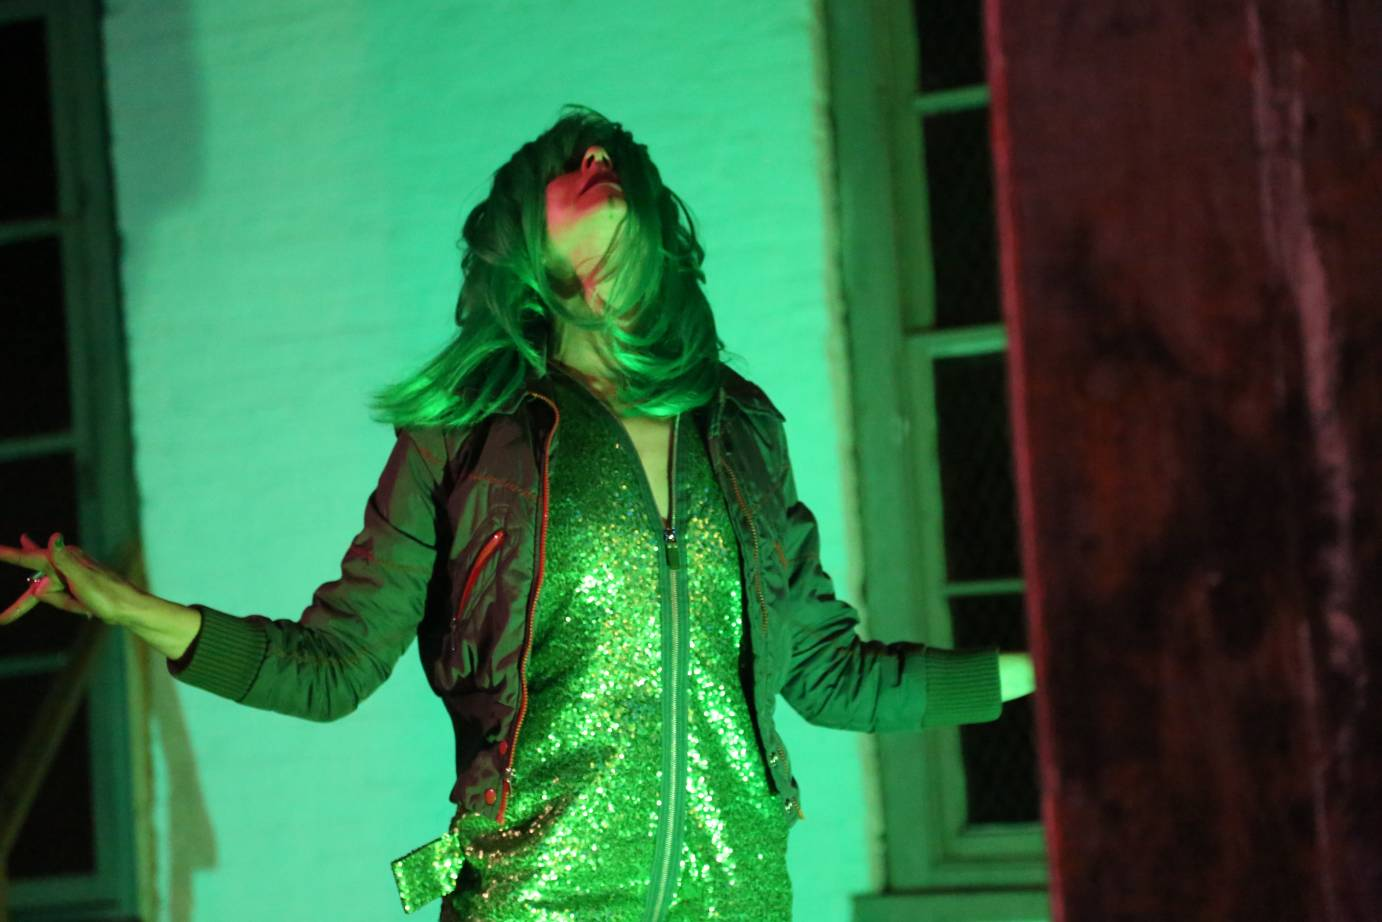 A woman in a green wig throws her head back